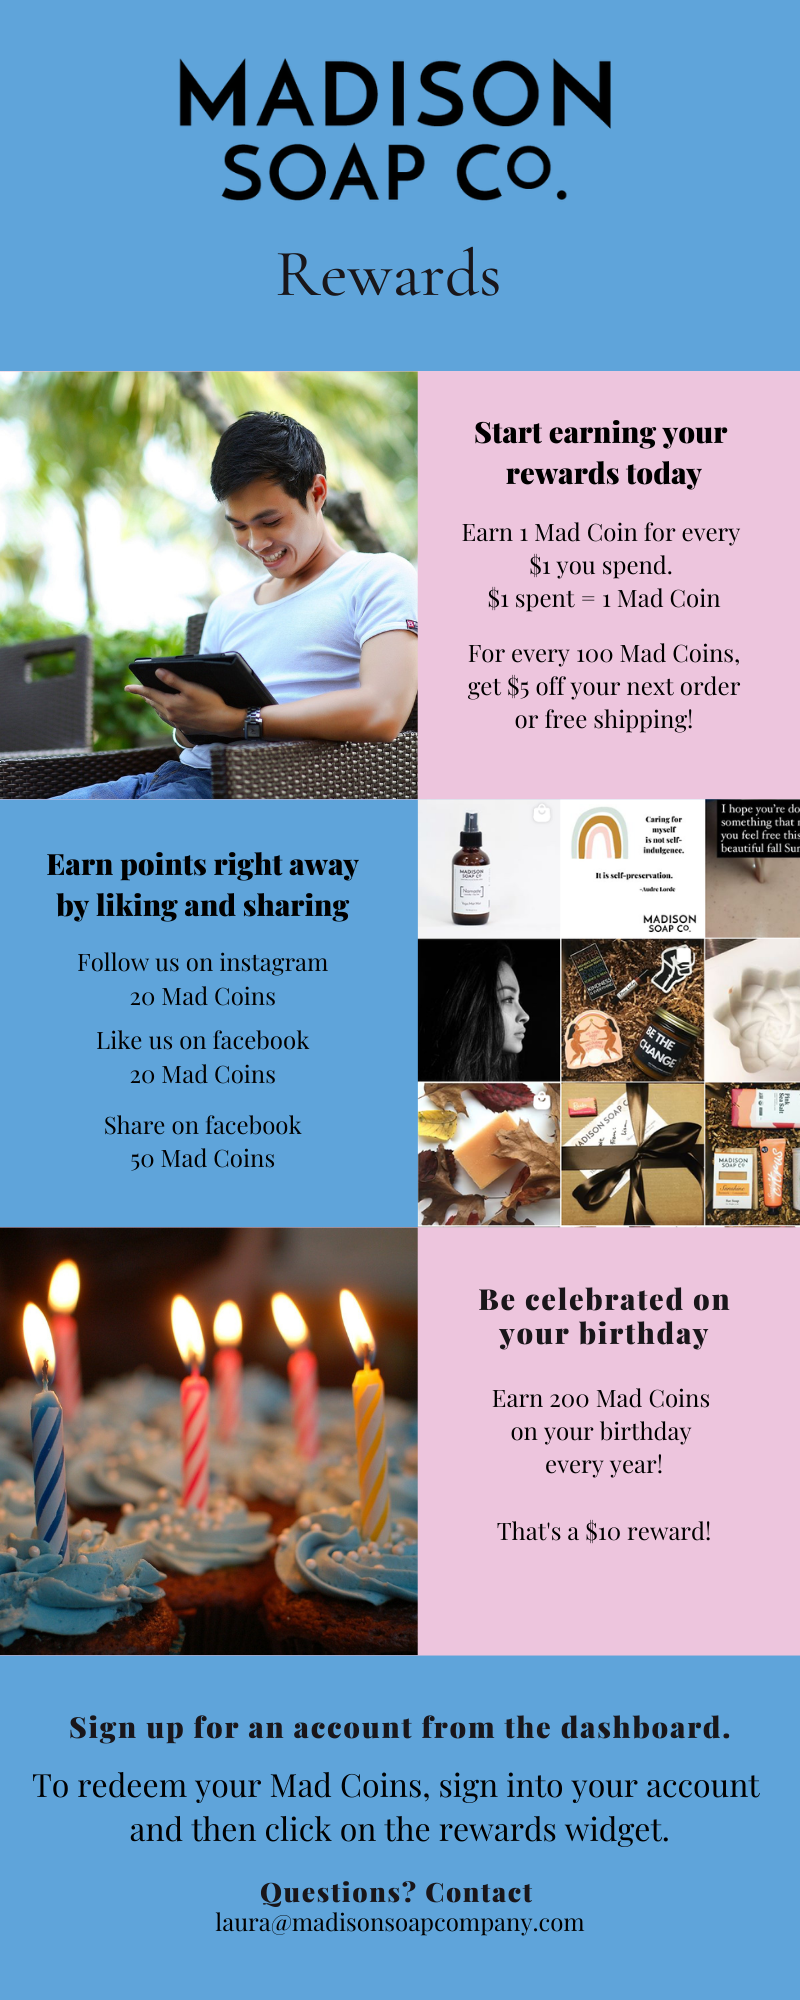 Madison Soap Co. Rewards